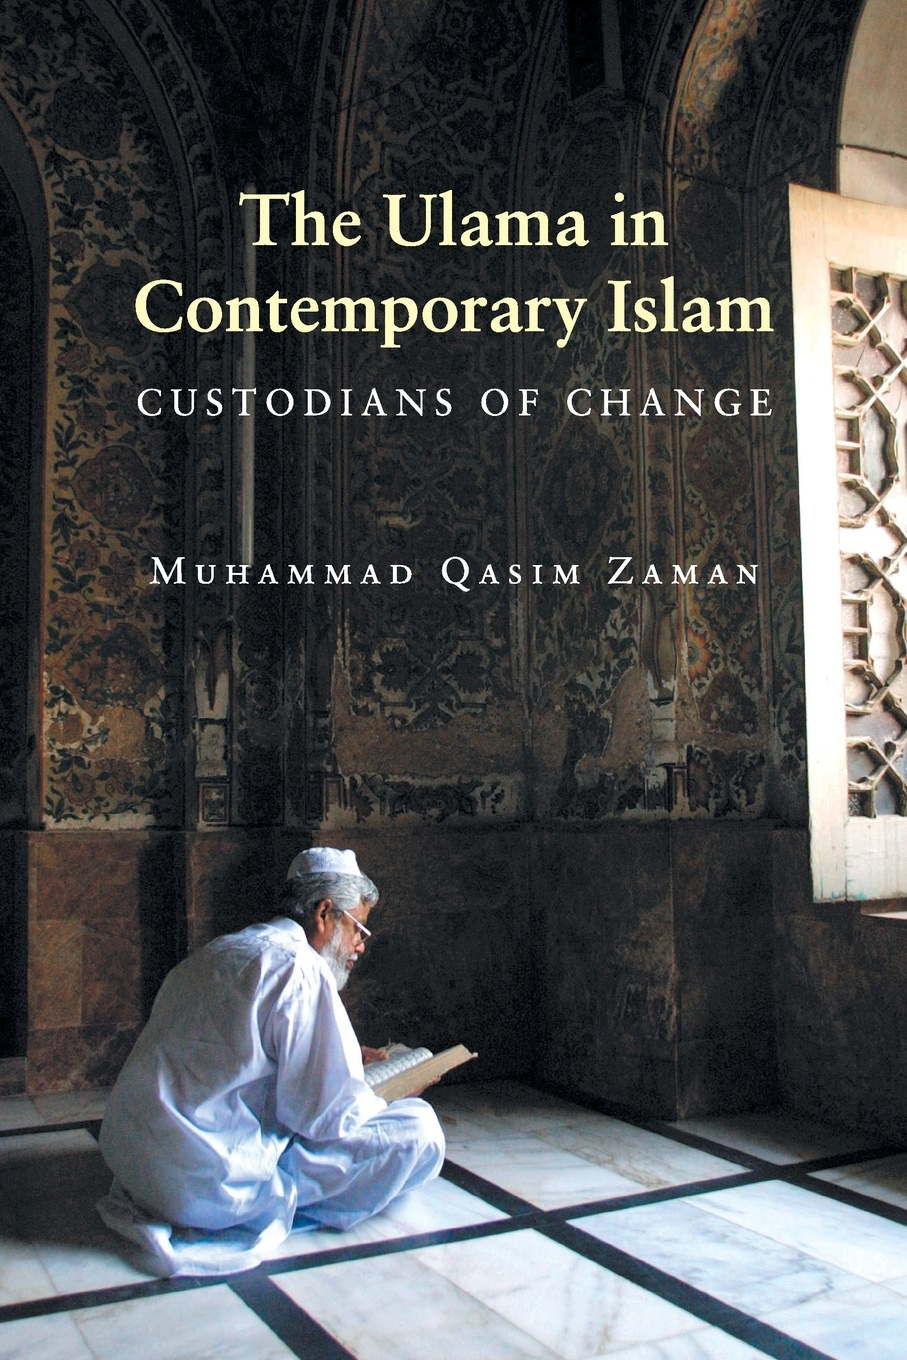 Muhammad Qasim Zaman The Ulama in Contemporary Islam. Custodians of Change mehmet ozan asik religious education in egypt a sociological analysis of contesting religious educational institutions policies and discourses